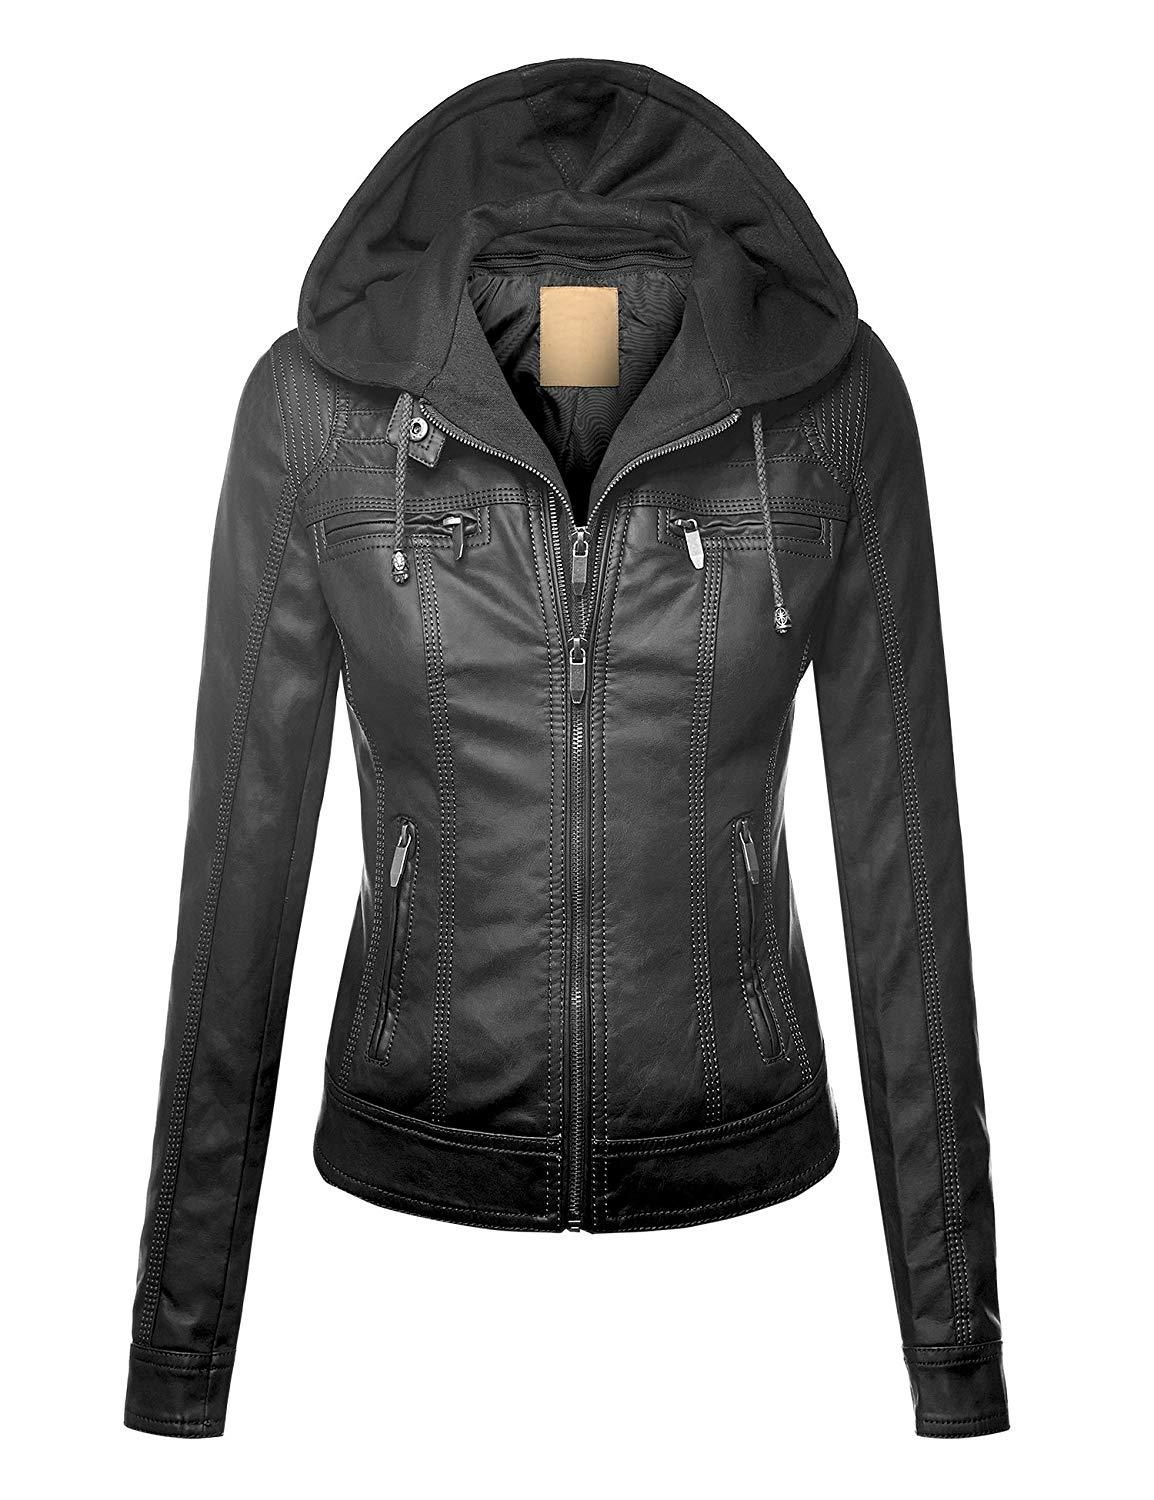 Womens Hooded Faux leather Jacket Leather jacket style